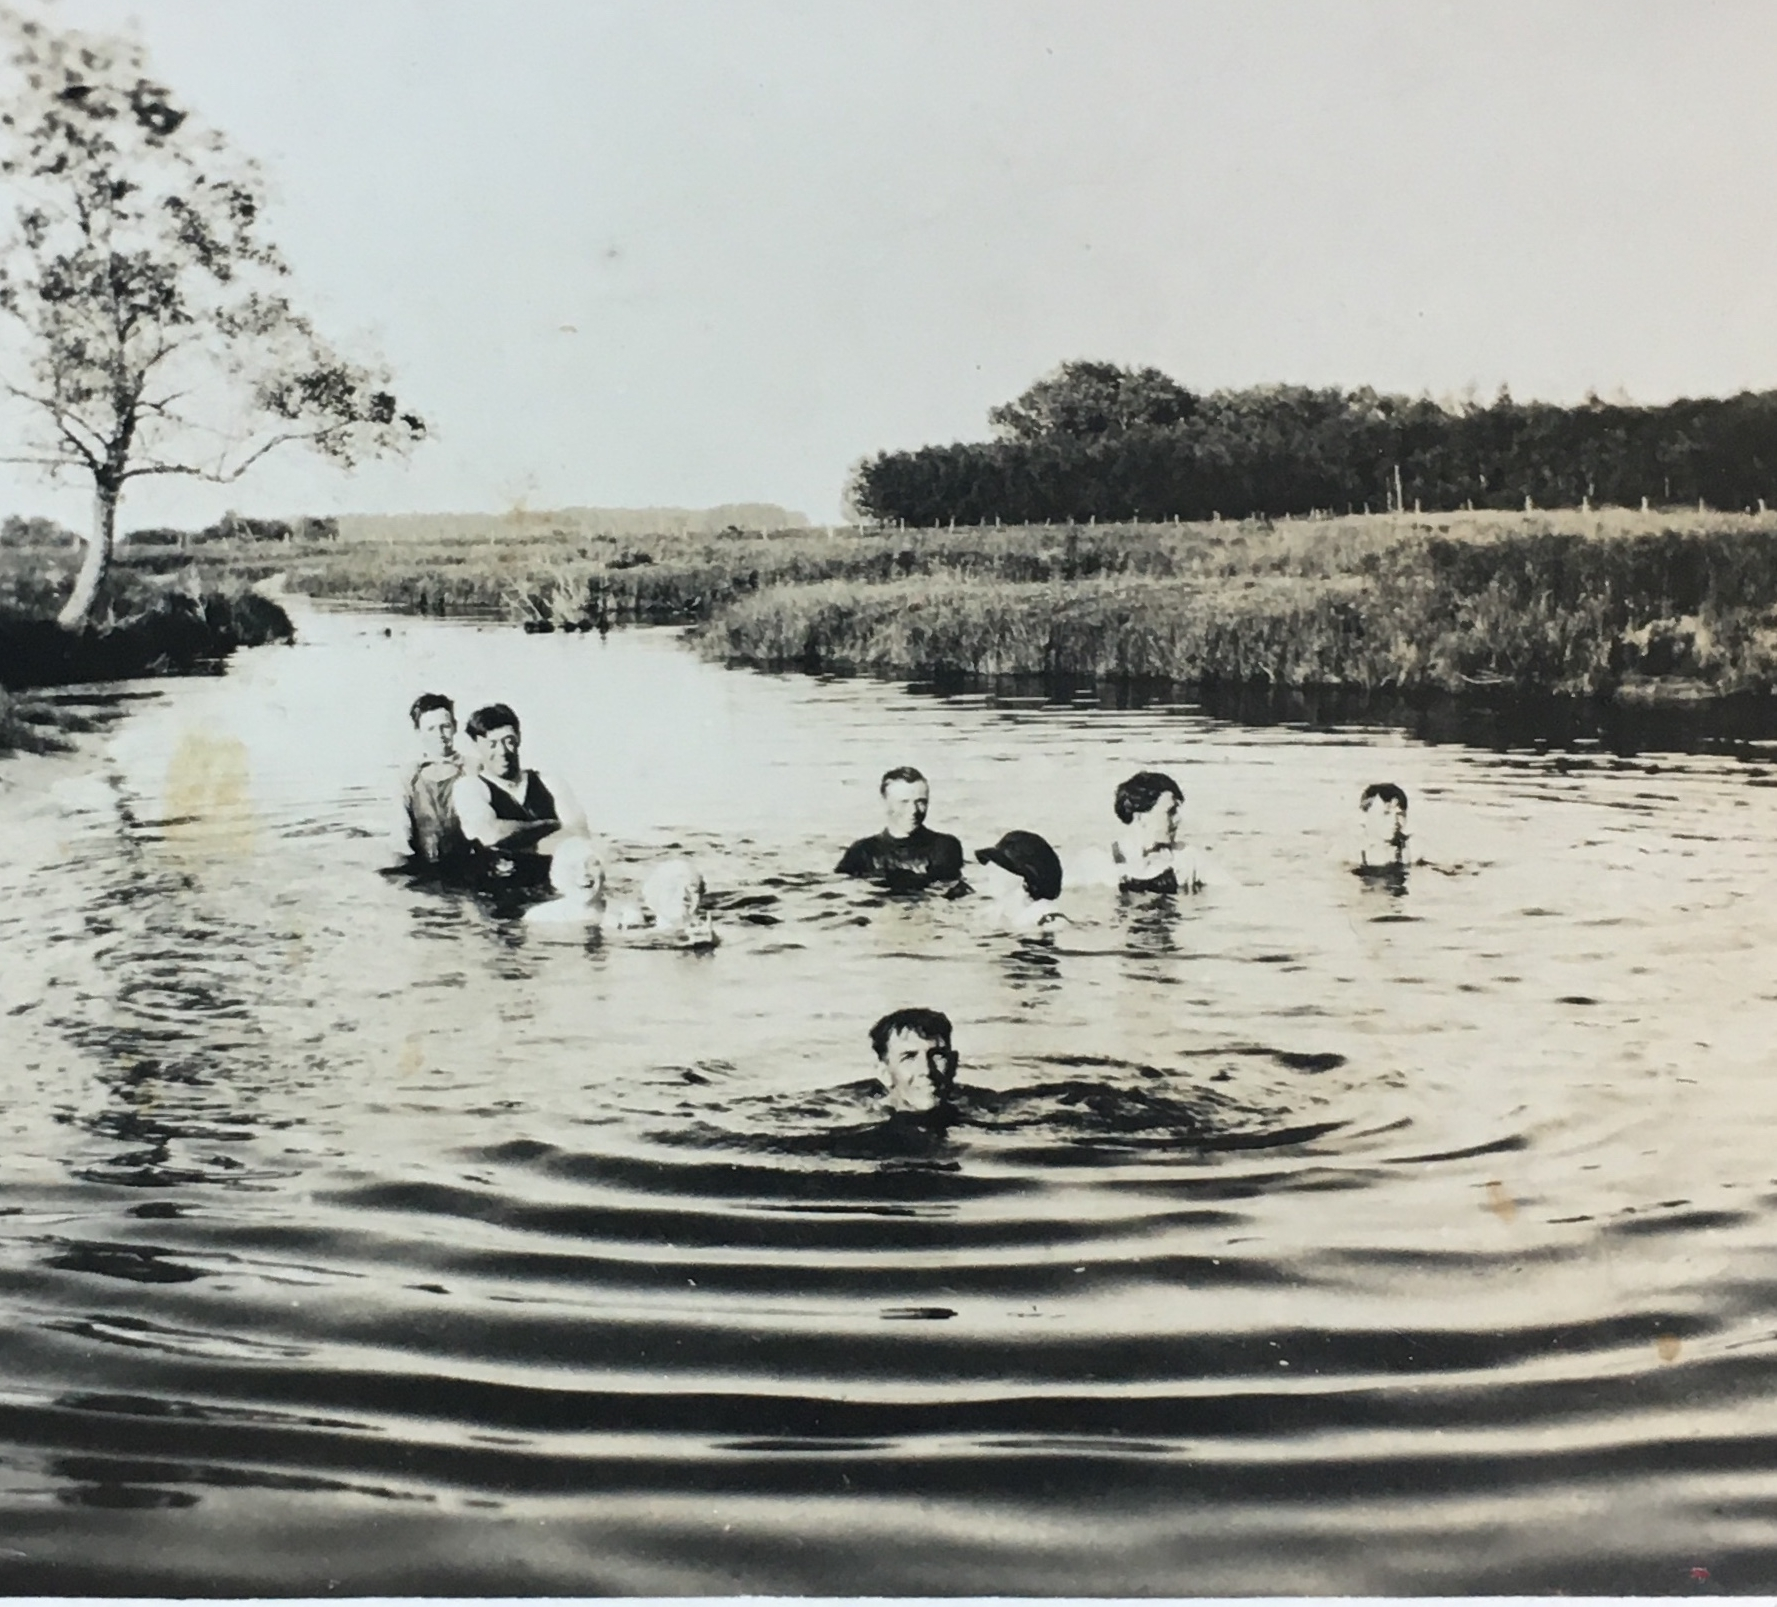 My grandfather enjoying a swim with his cousins.